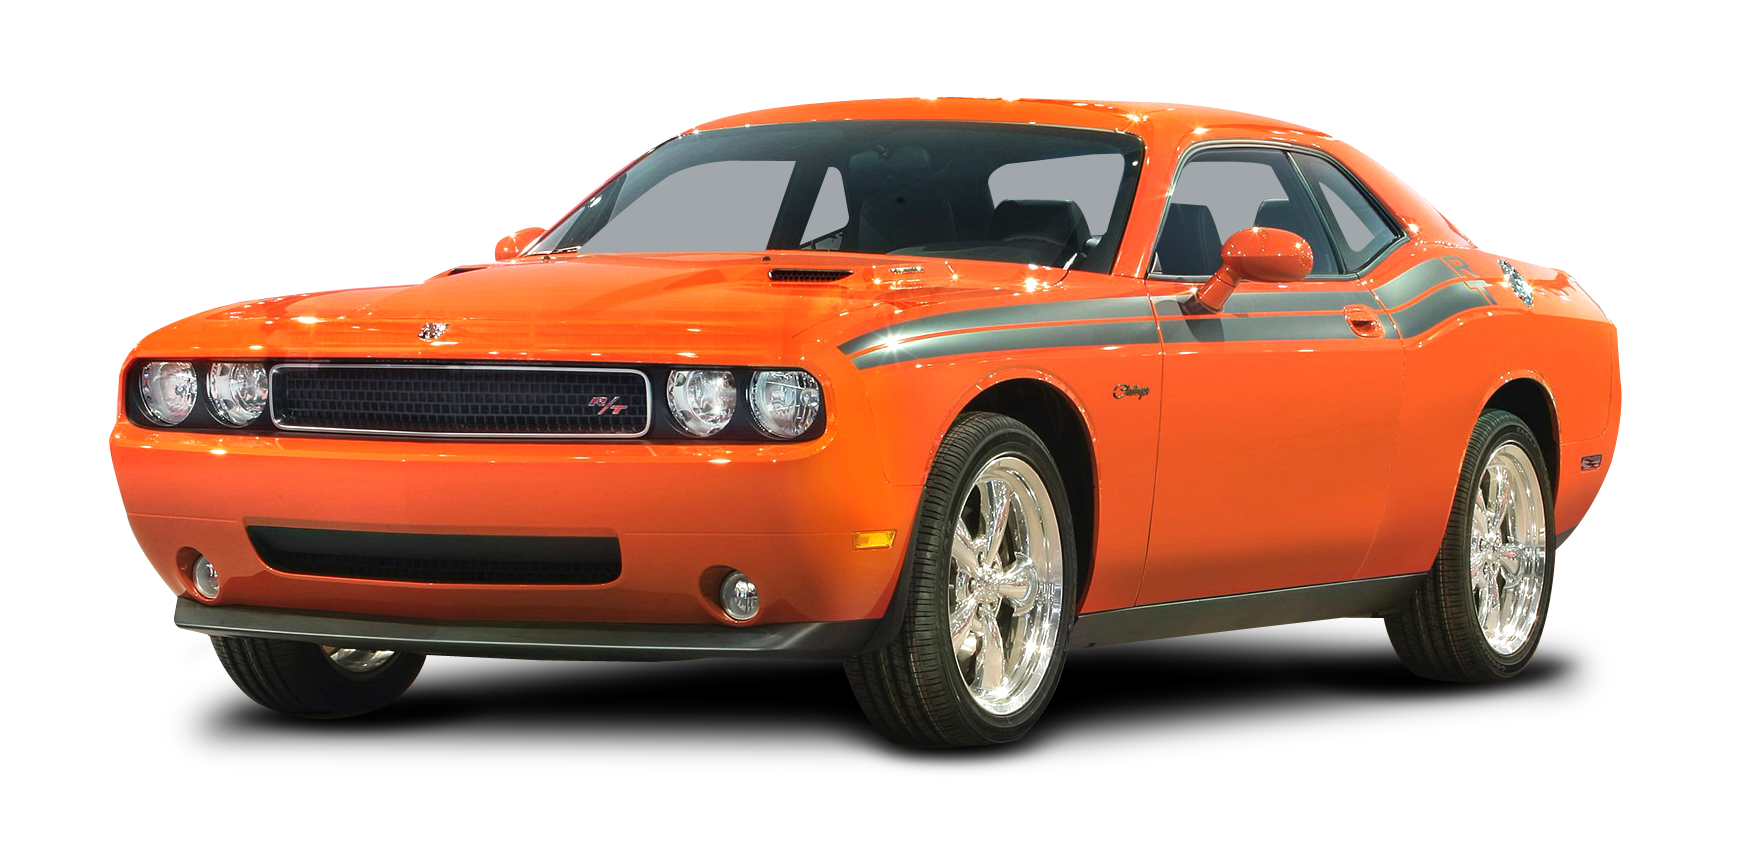 Mustang clipart muscle car. Ford png image purepng